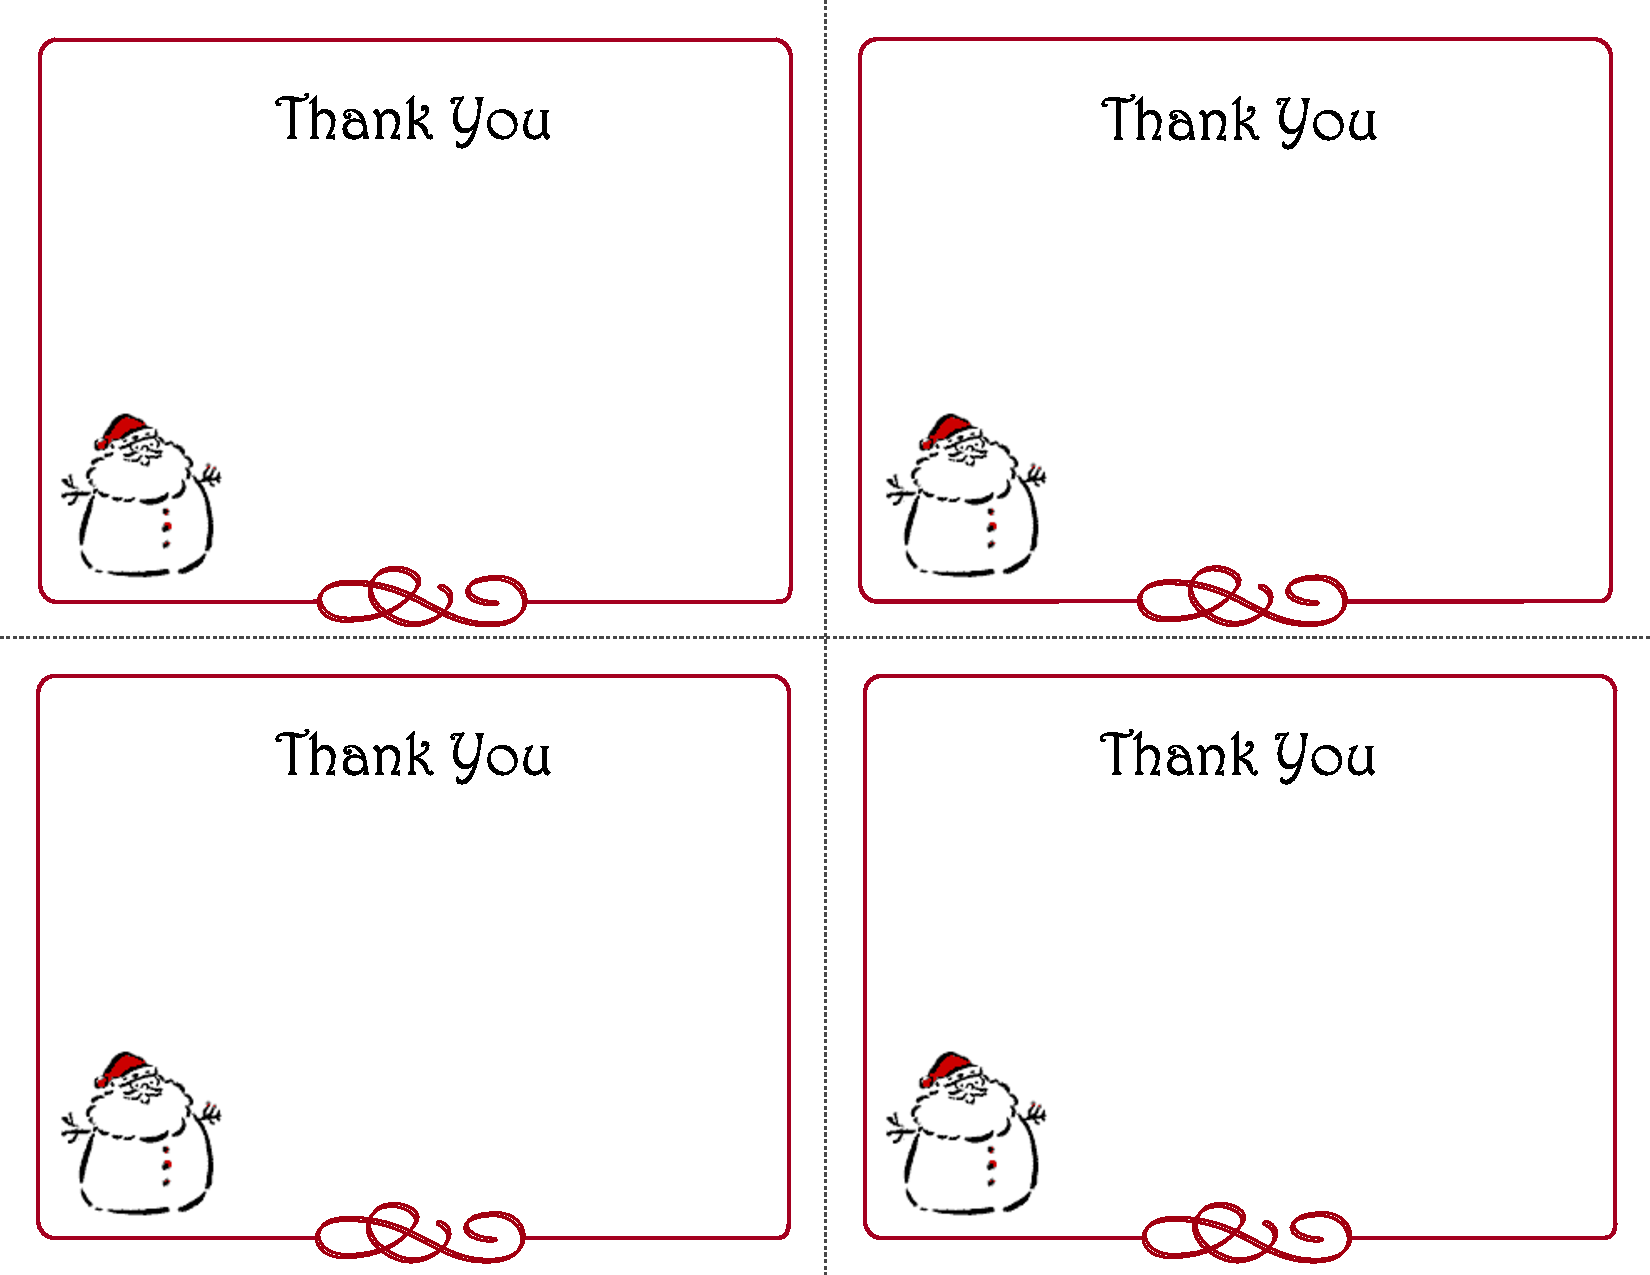 6 Images of Free Printable Christmas Thank You Card Templates